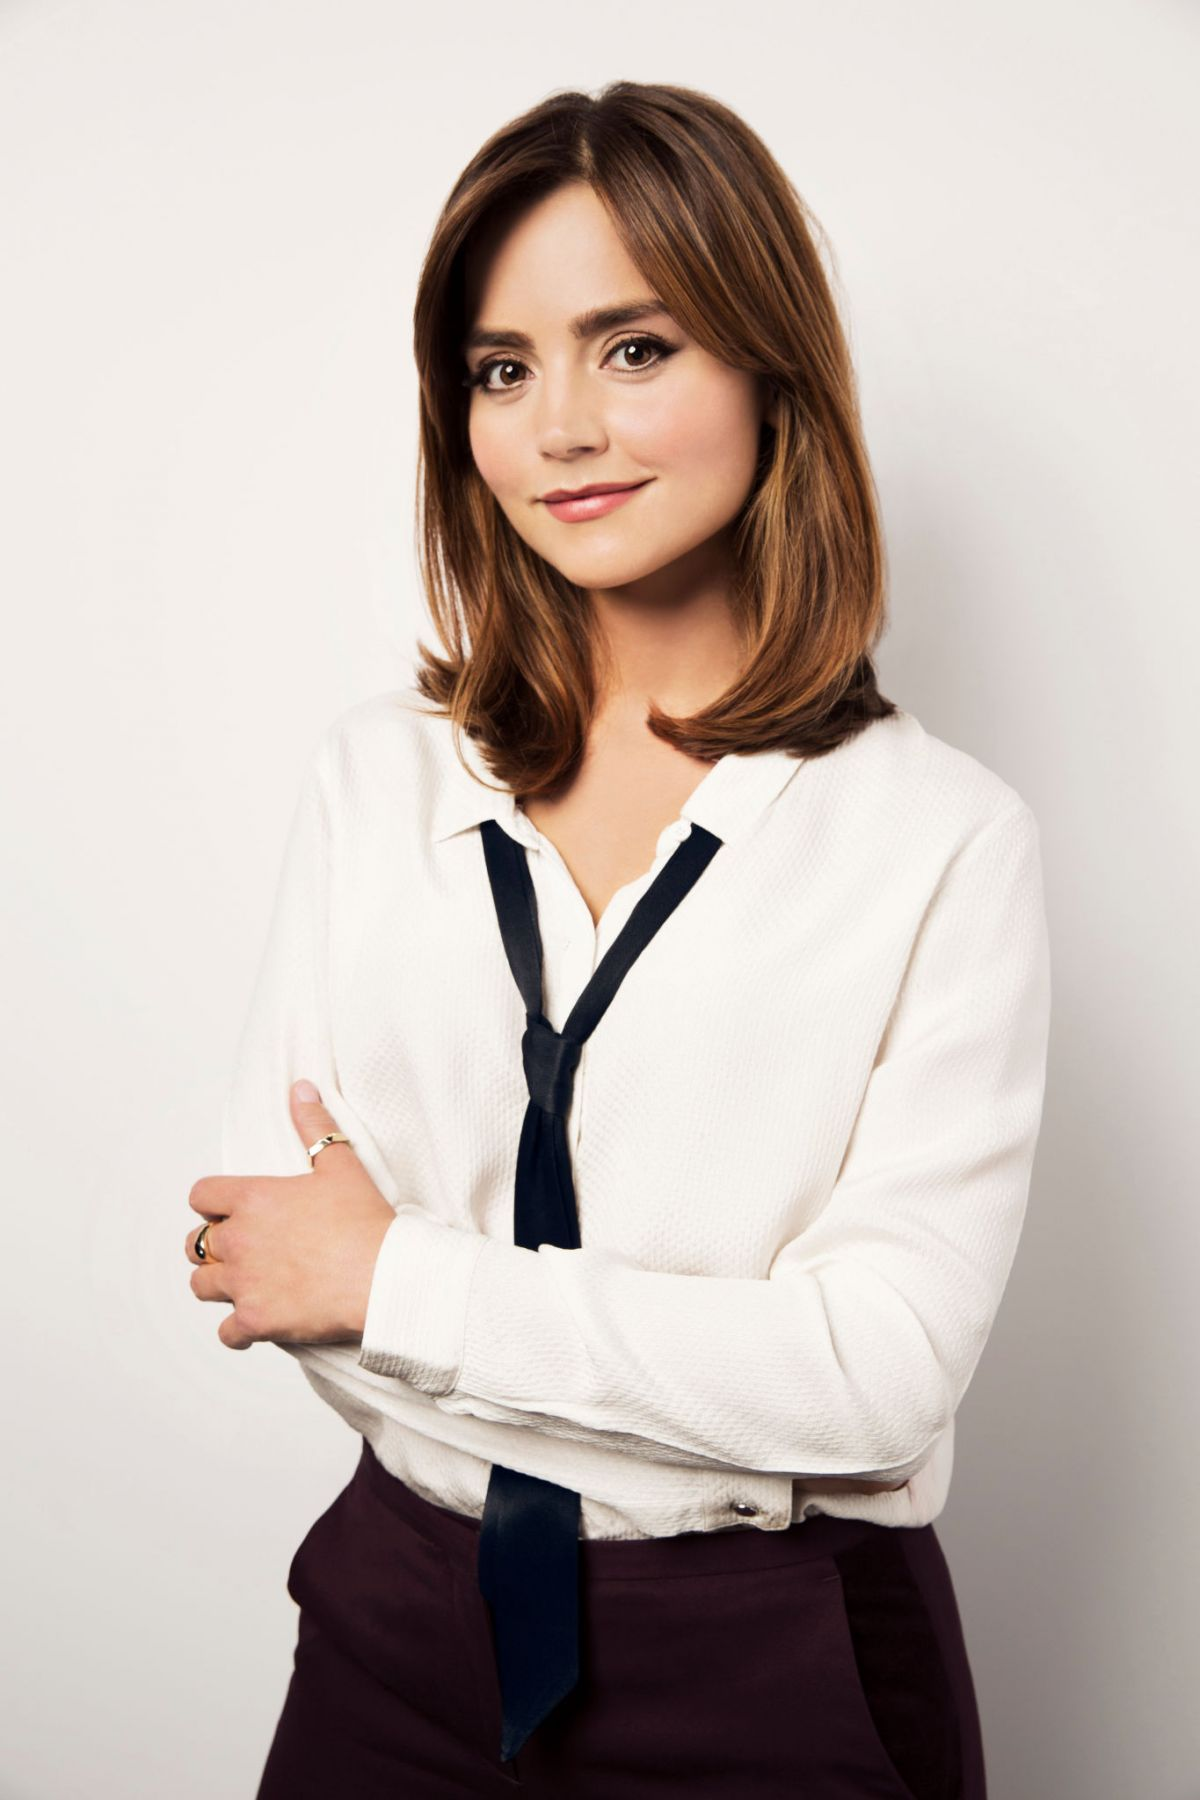 HD Quality Wallpaper   Collection: Celebrity, 1200x1800 Jenna-louise Coleman